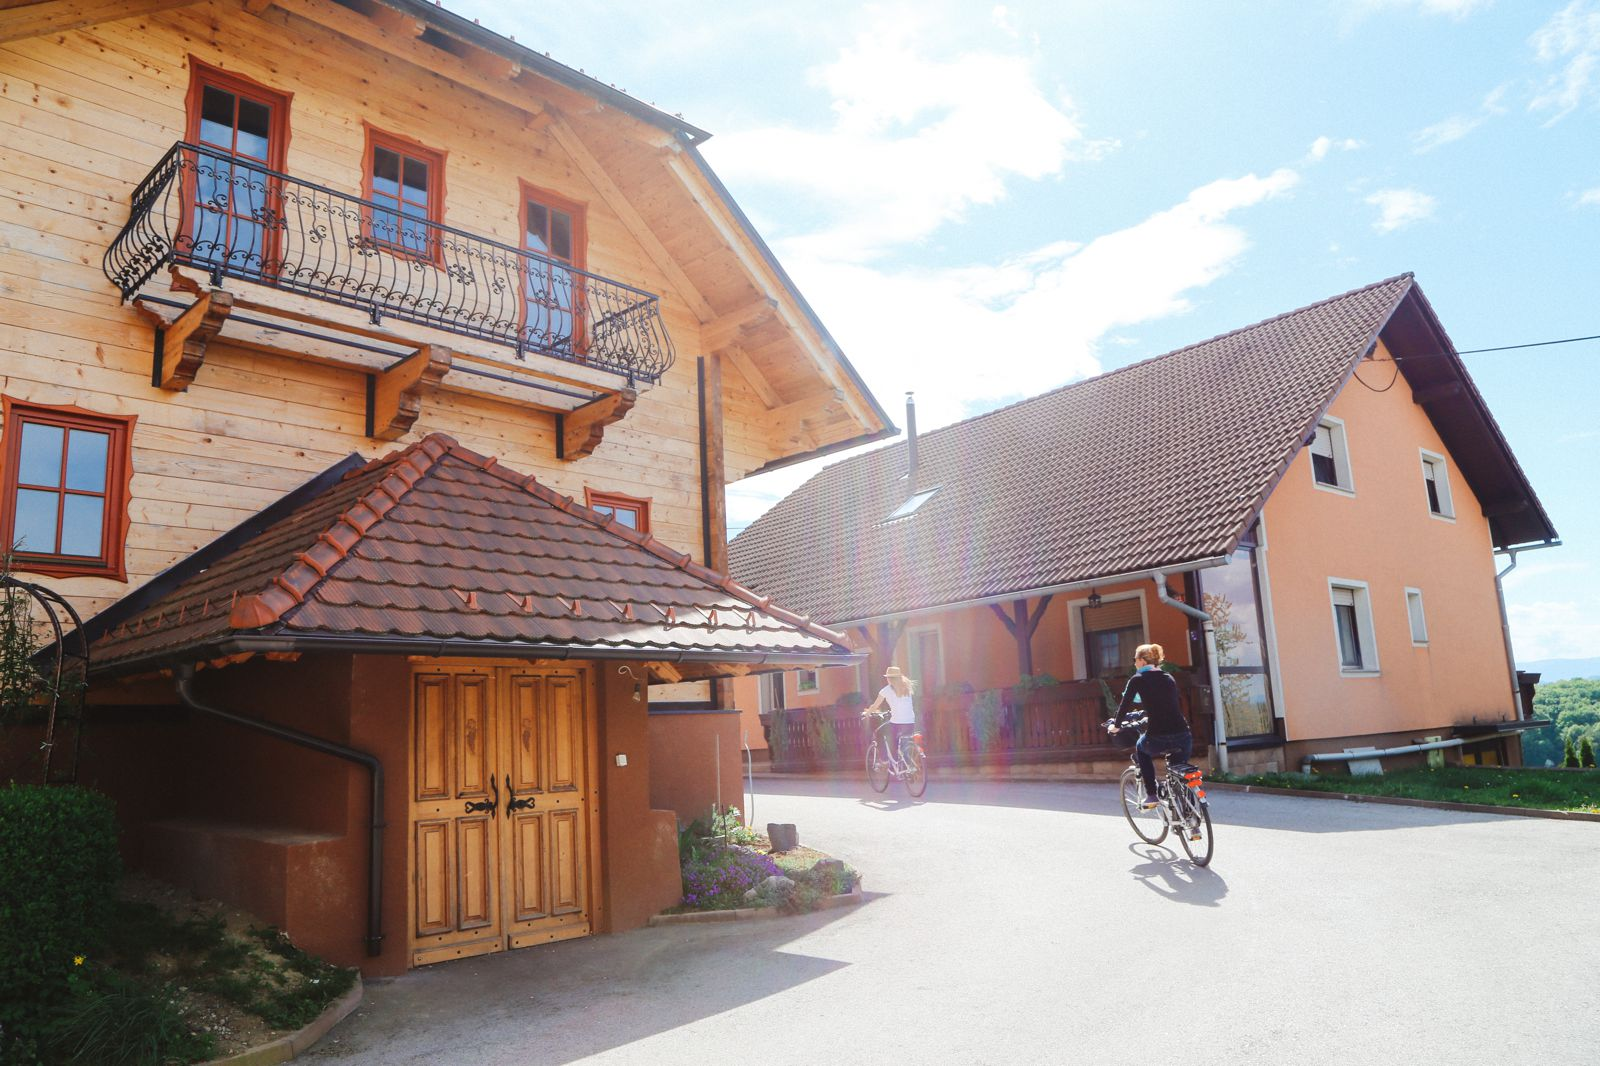 Vineyards, Charcuterie And The Old Historic City Of Maribor, Slovenia (2)